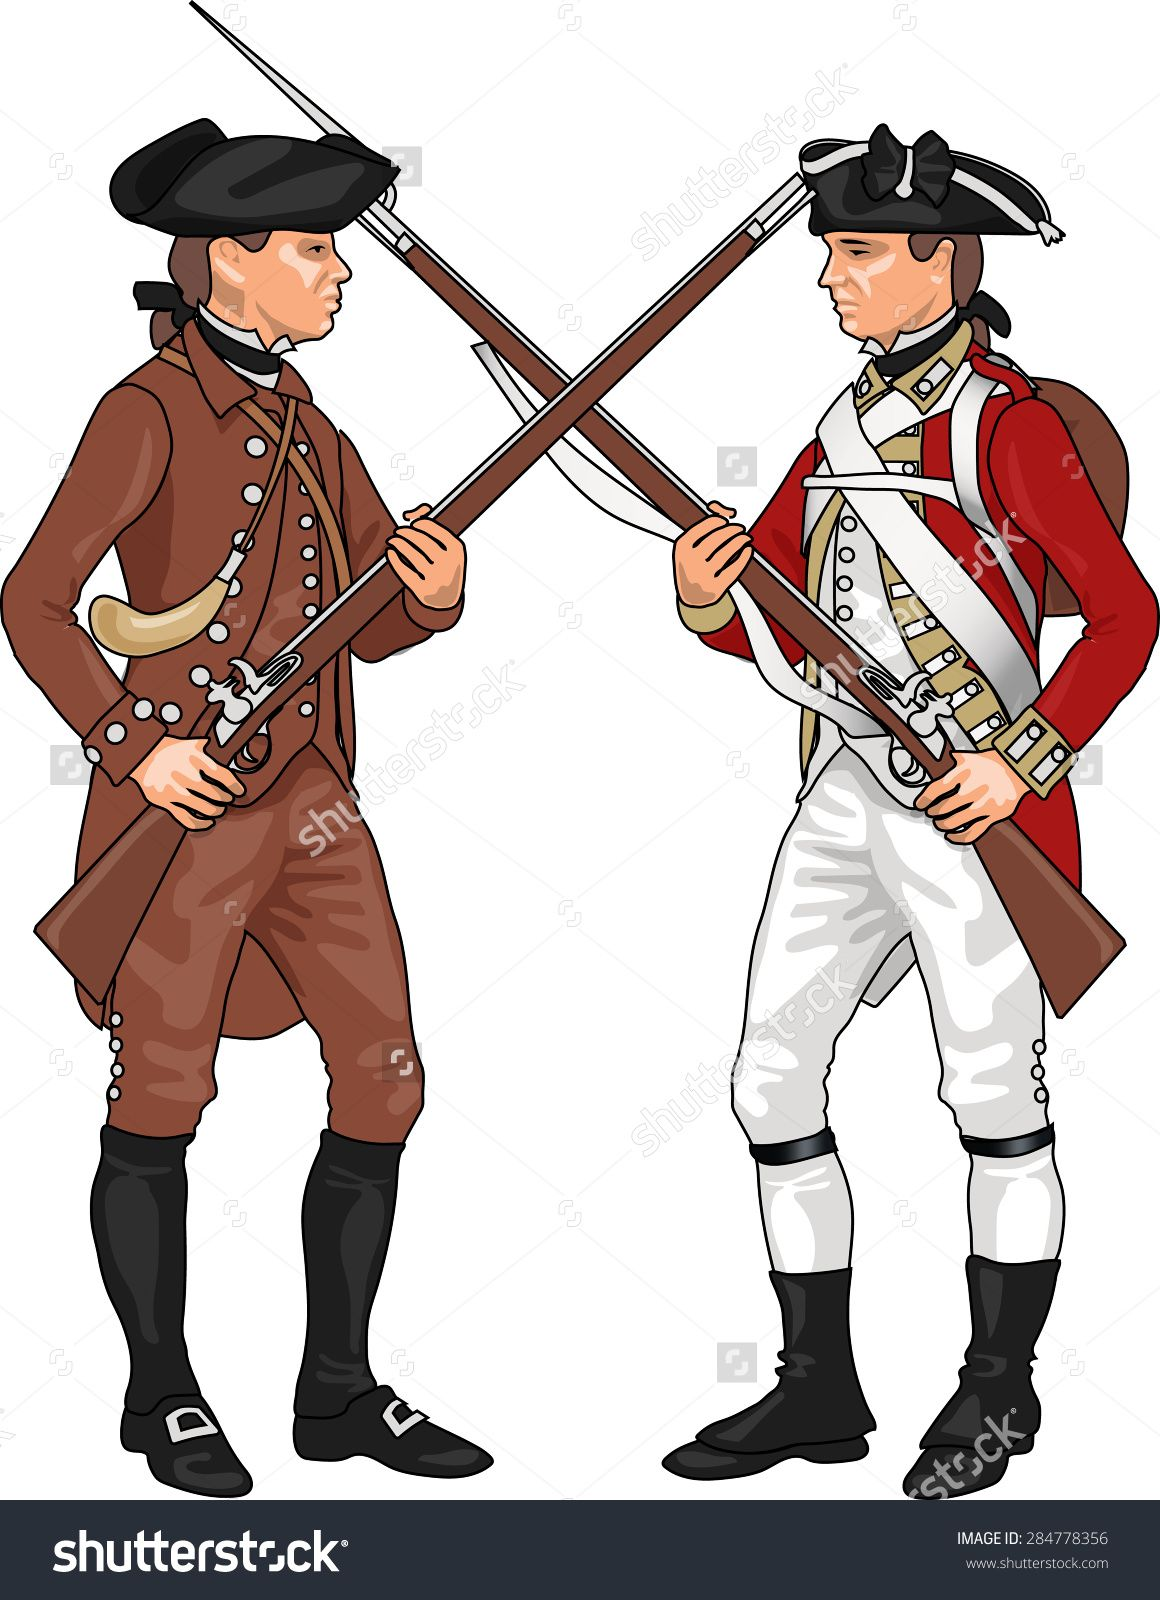 British soldier revolutionary war. Military clipart history american